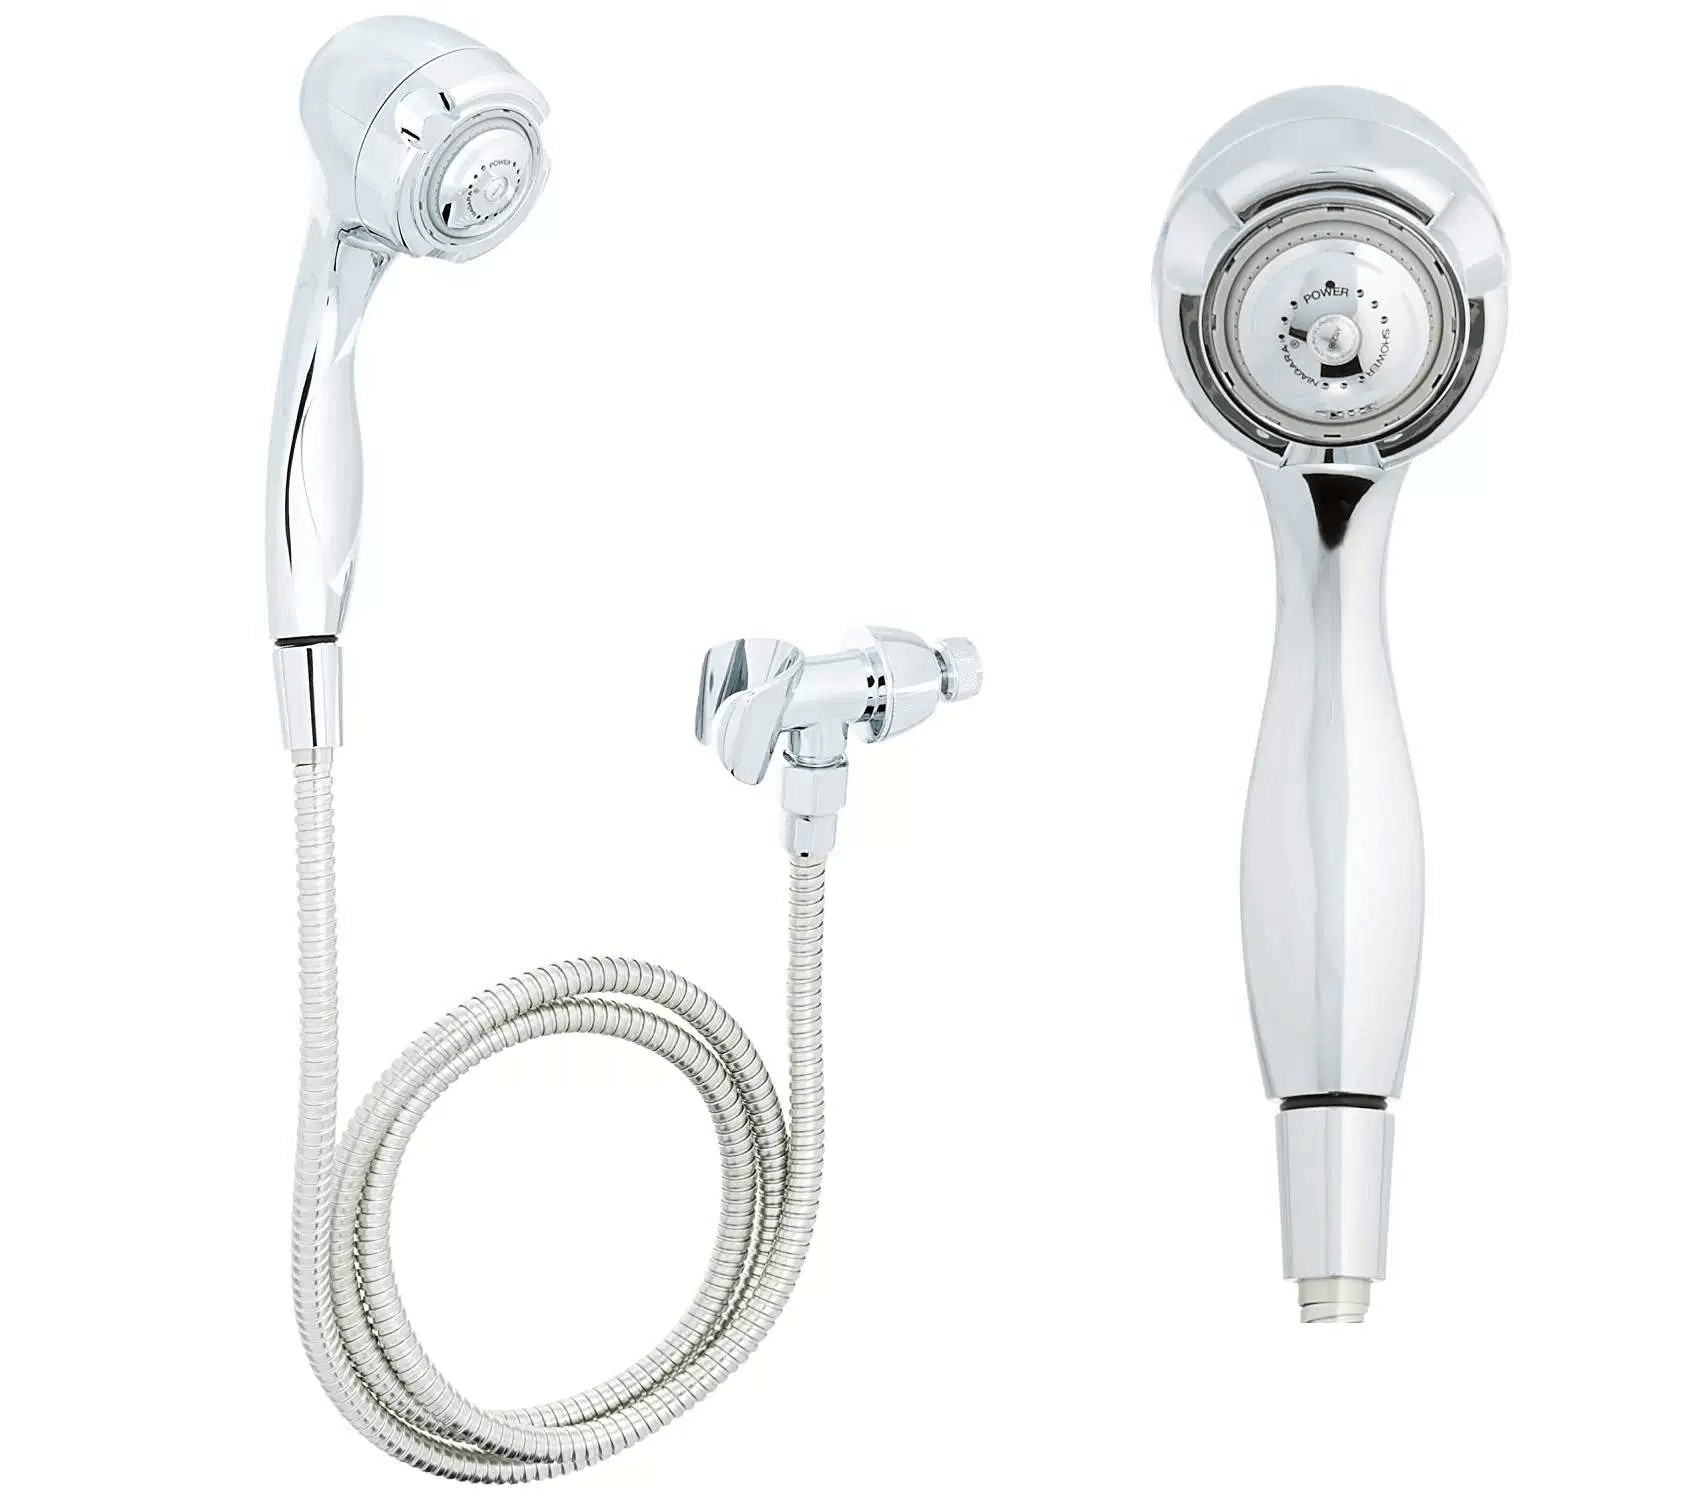 Best Handheld Shower Head You Need To Consider Buying